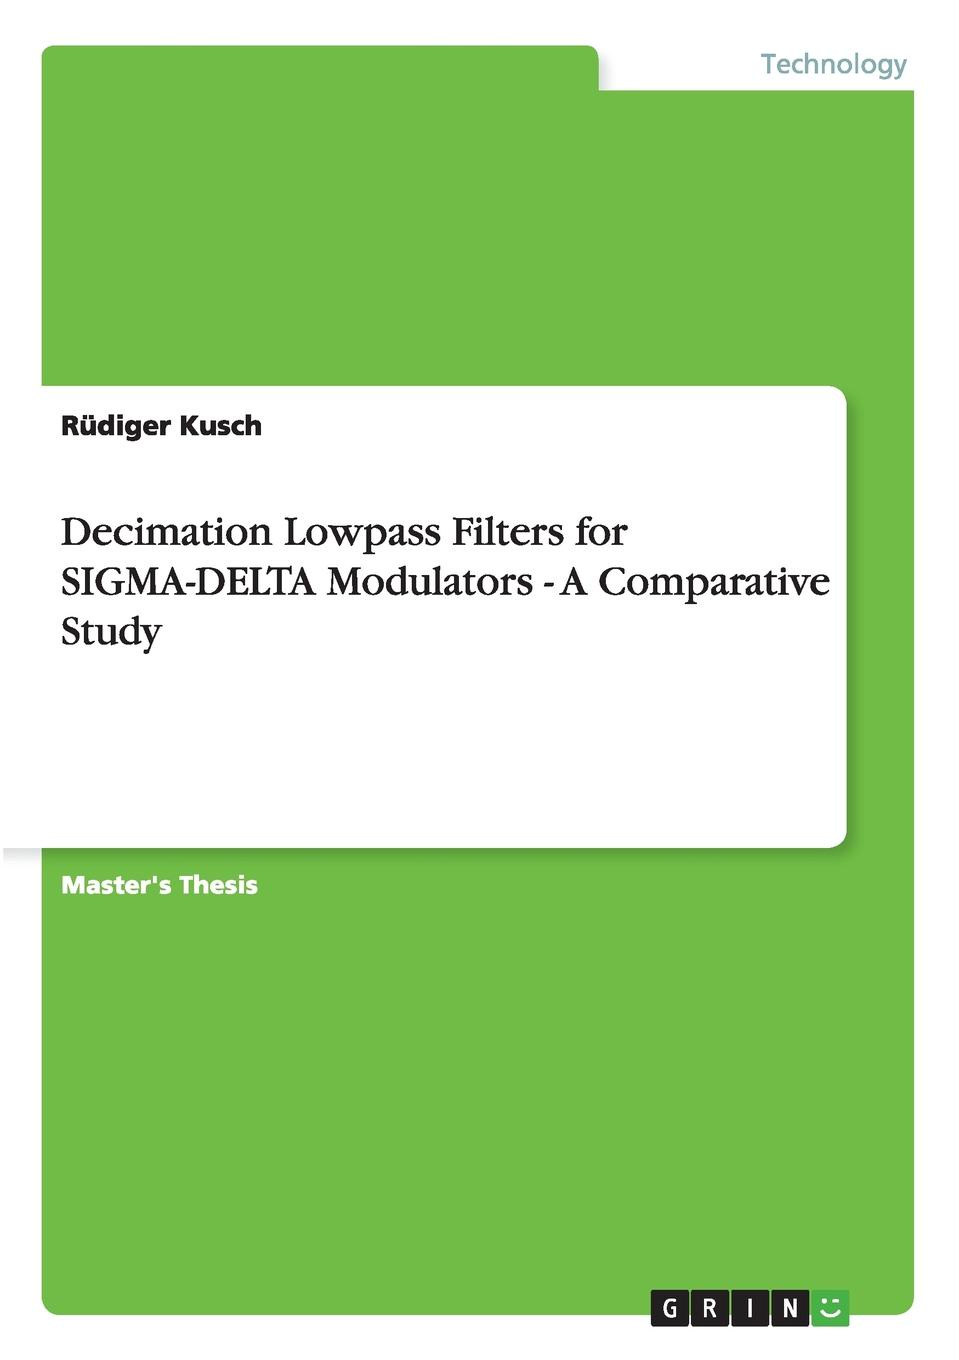 Rüdiger Kusch Decimation Lowpass Filters for SIGMA-DELTA Modulators - A Comparative Study fred taylor digital filters principles and applications with matlab